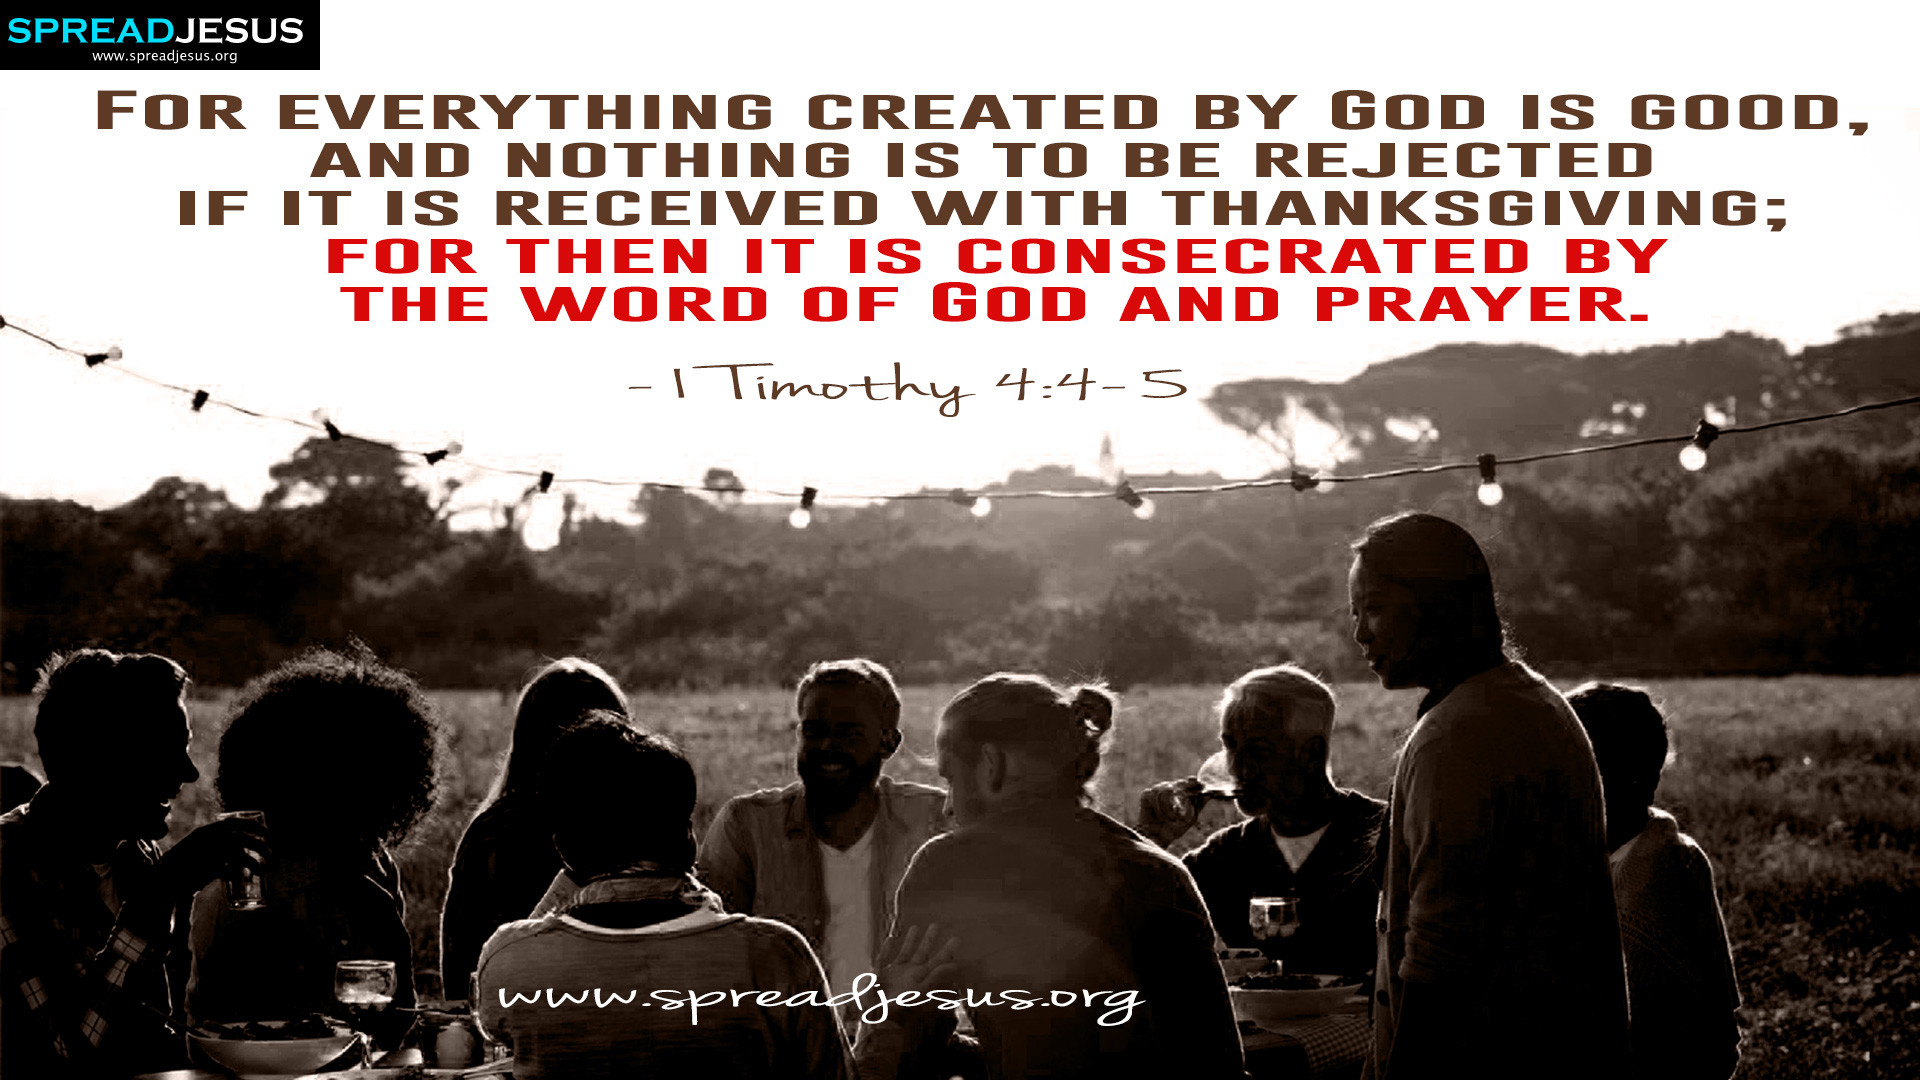 Consecrated by the word of God and prayer 1 Timothy 4:4-5 Bible